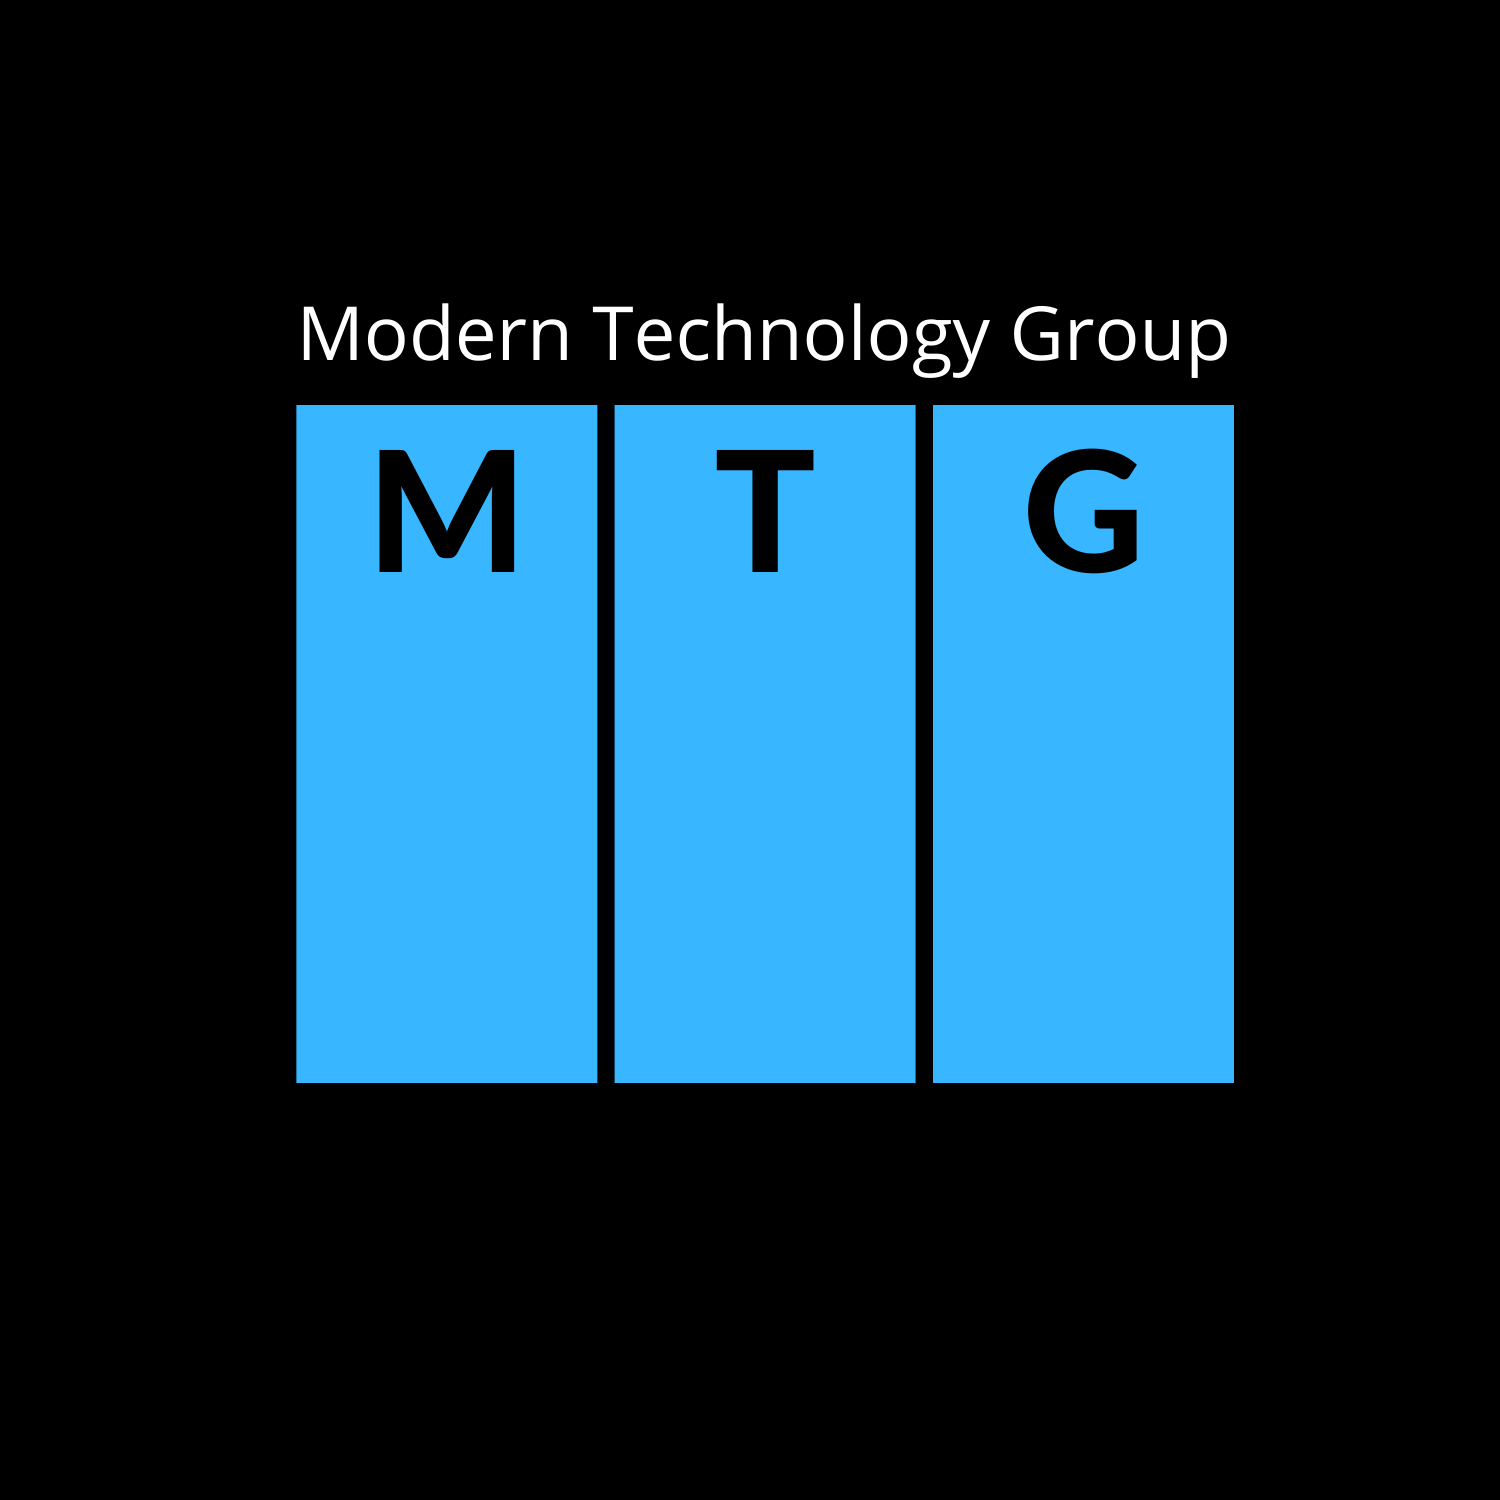 Modern Technology Group